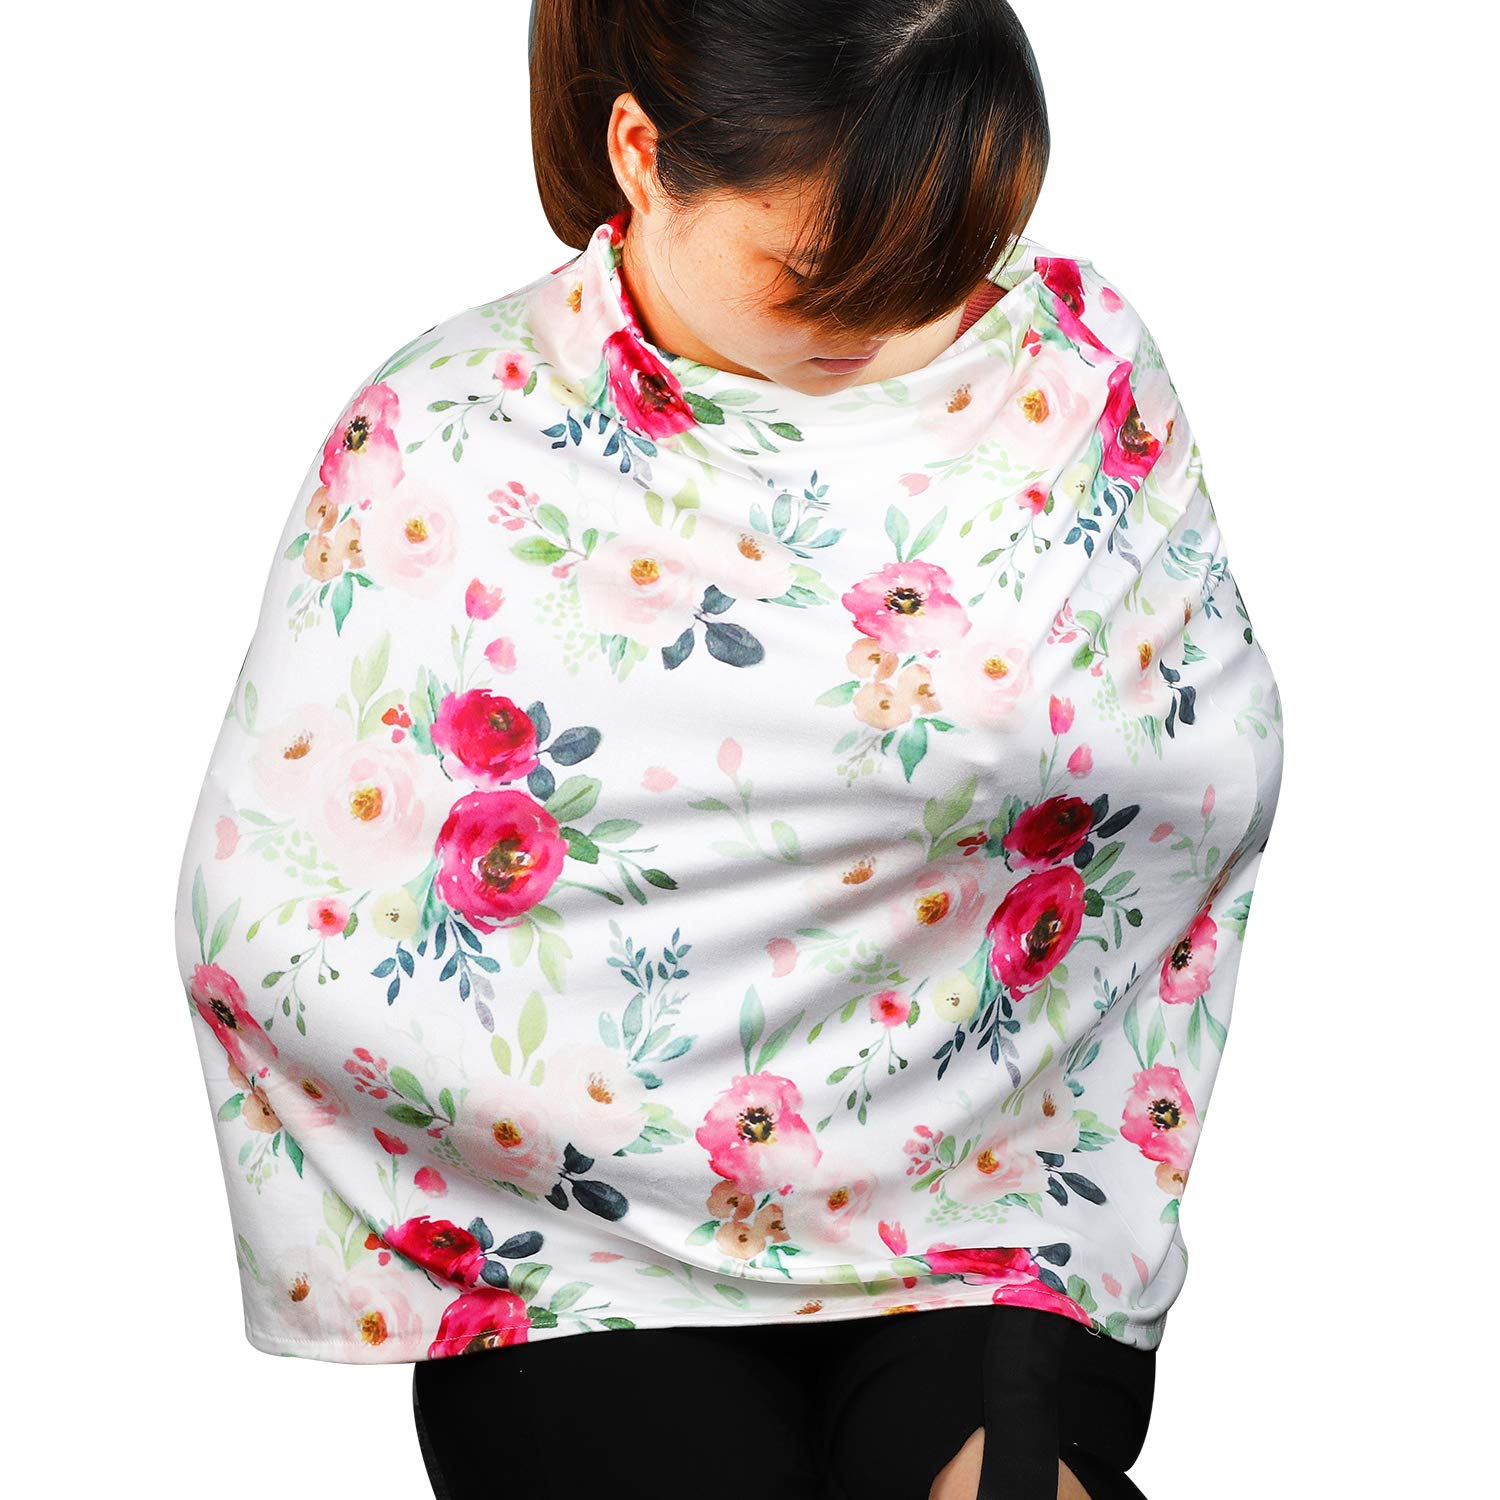 Newborn Baby Swaddle Blanket Baby Car Seat Cover Floral White Blue Breathable Cotton Mums Breastfeeding Apron Shawl Flyish Breastfeeding Cover Nursing Cover Scarf for Breastfeeding